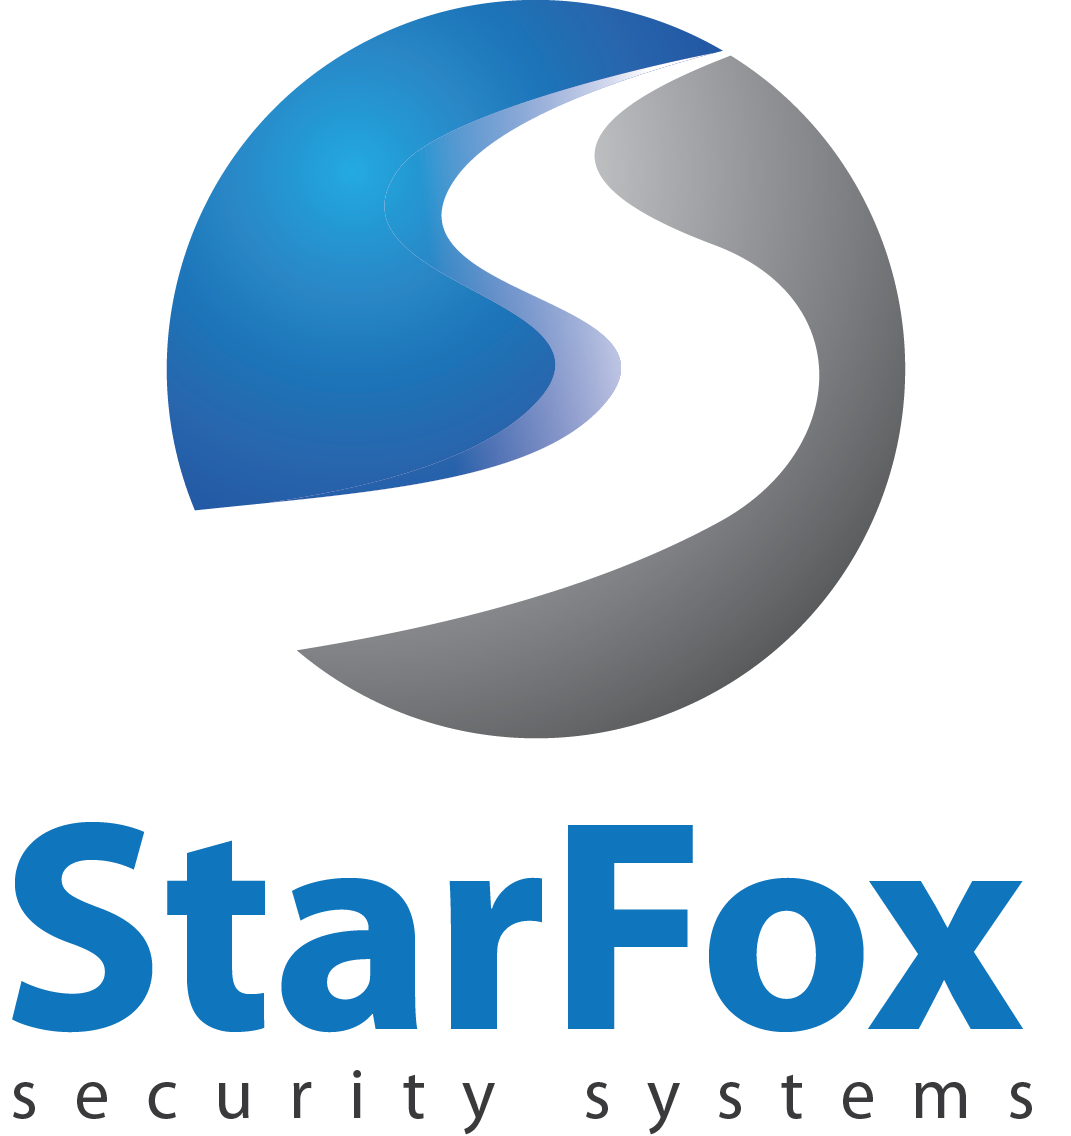 Starfox Security System